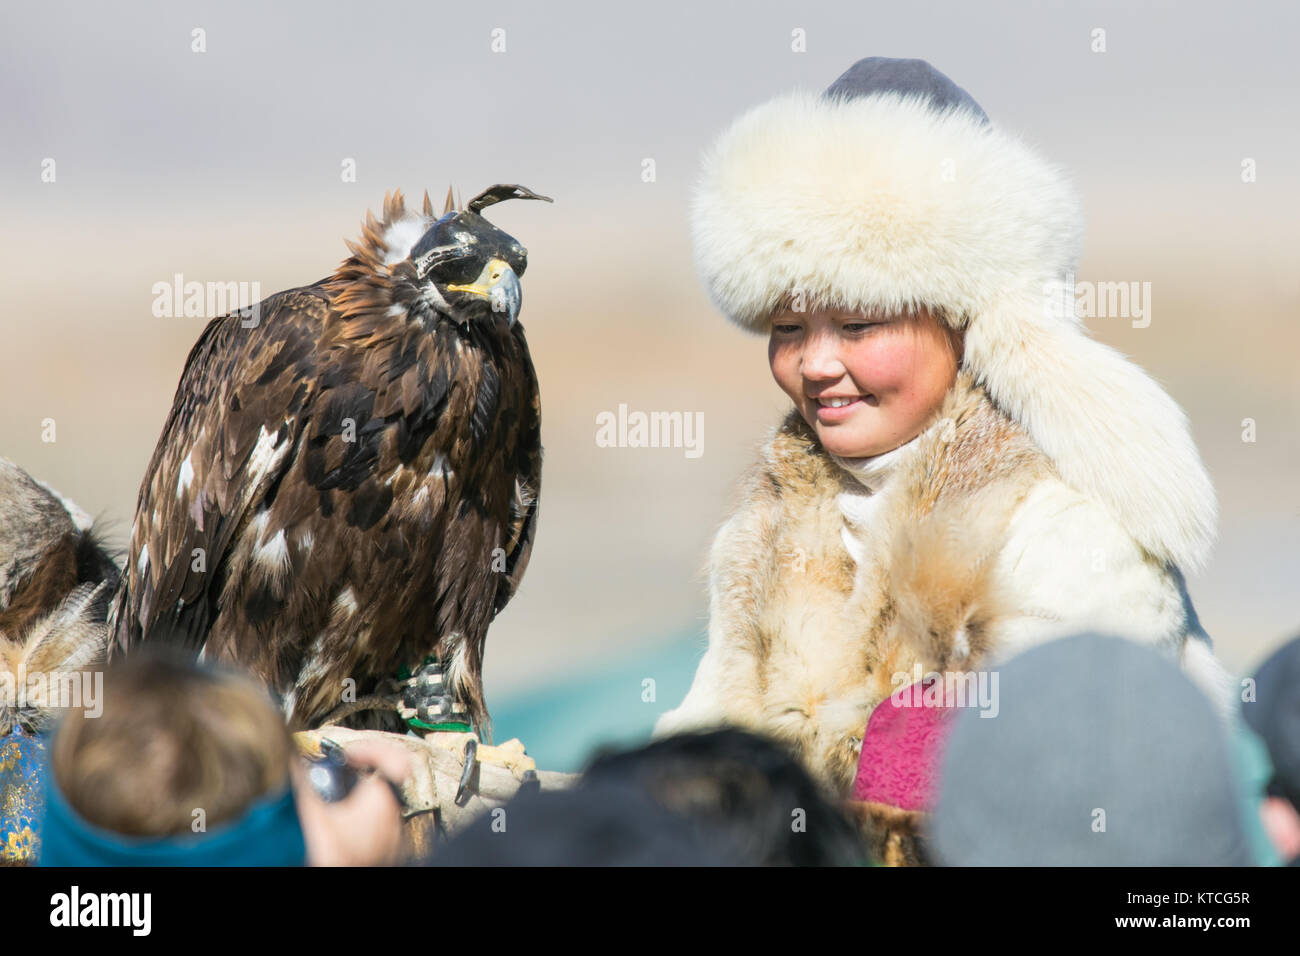 Aisholpan from The Eagle Huntress at the Golden Eagle Festival in Mongolia - Stock Image